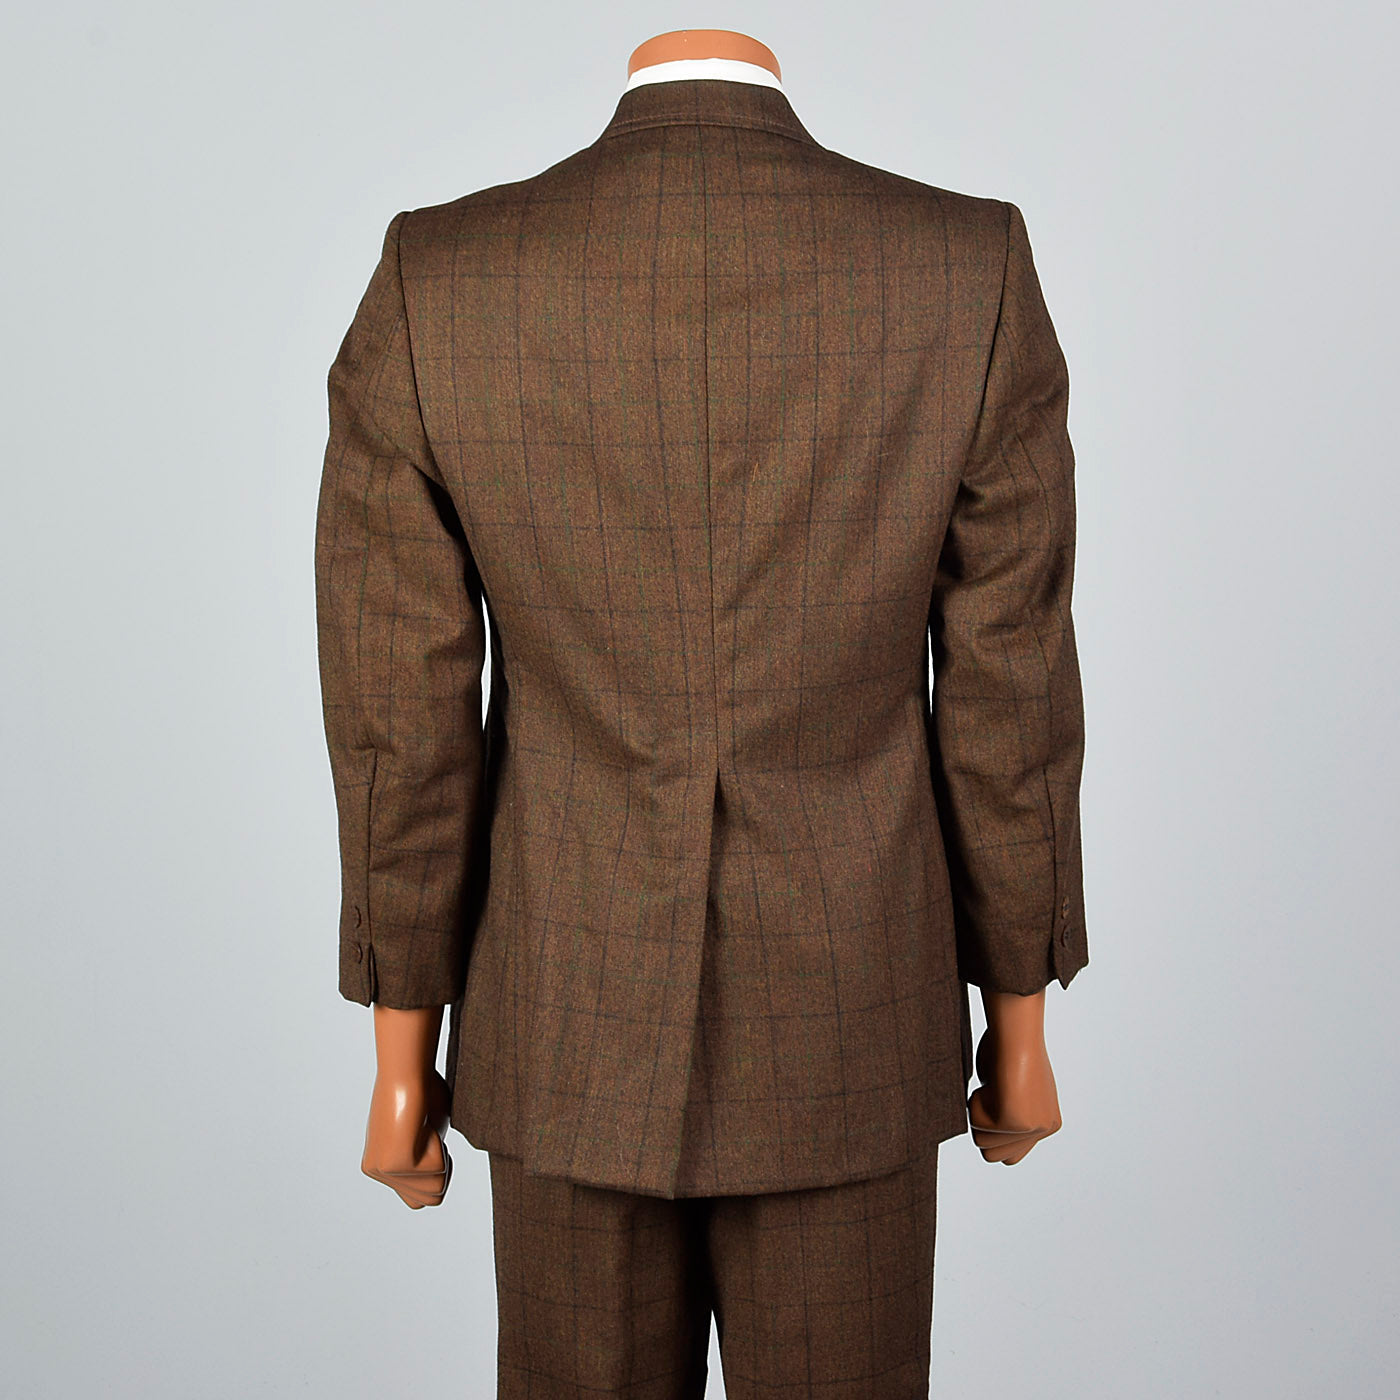 1970s Mens Brown Wool Windowpane Suit